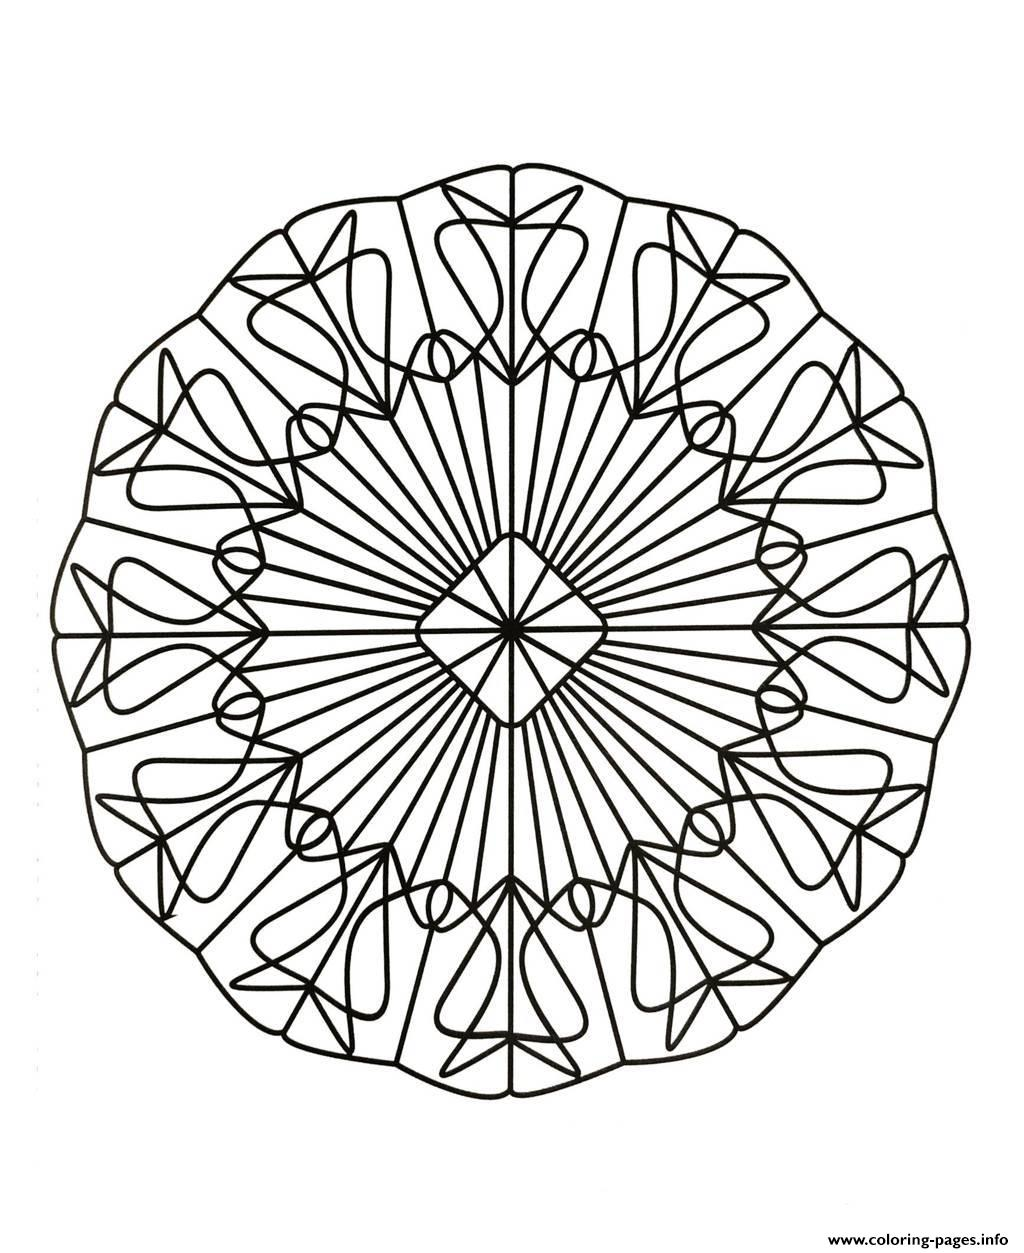 mandalas to download for free 2 coloring pages printable. Black Bedroom Furniture Sets. Home Design Ideas